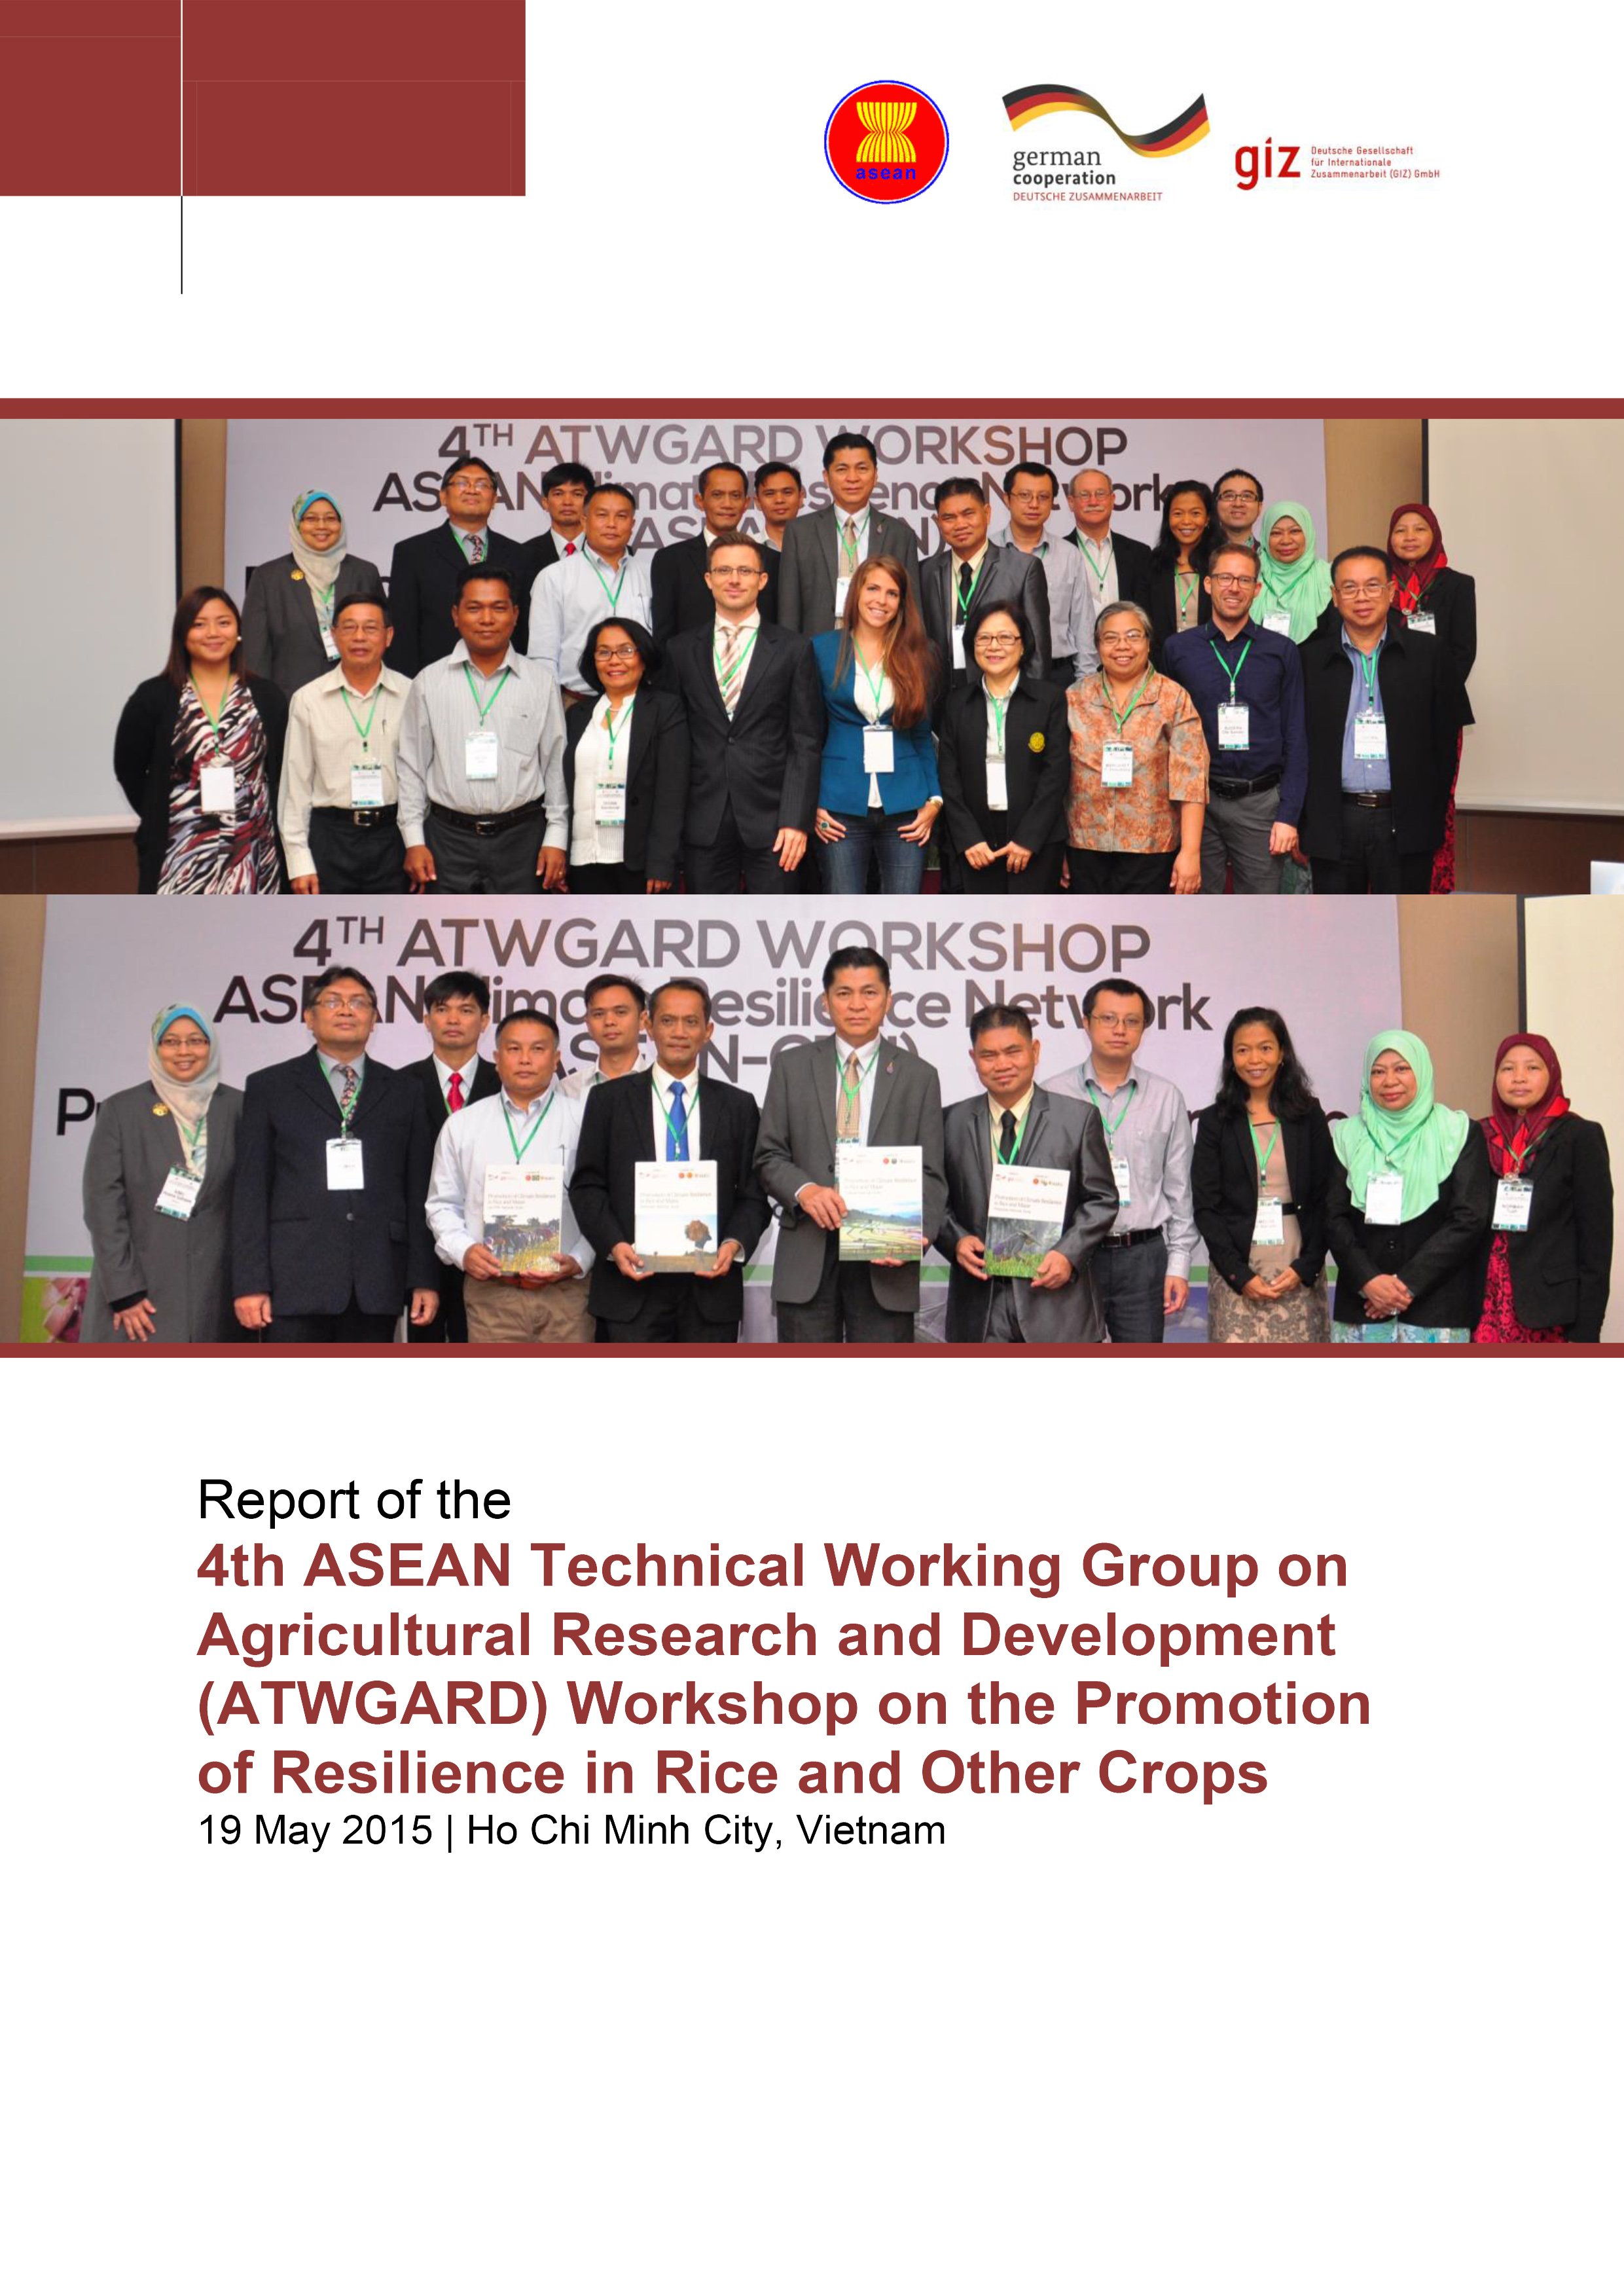 Report: 4th Special ATWGARD Meeting on the Promotion of Climate Resilience in Rice & Other Crops